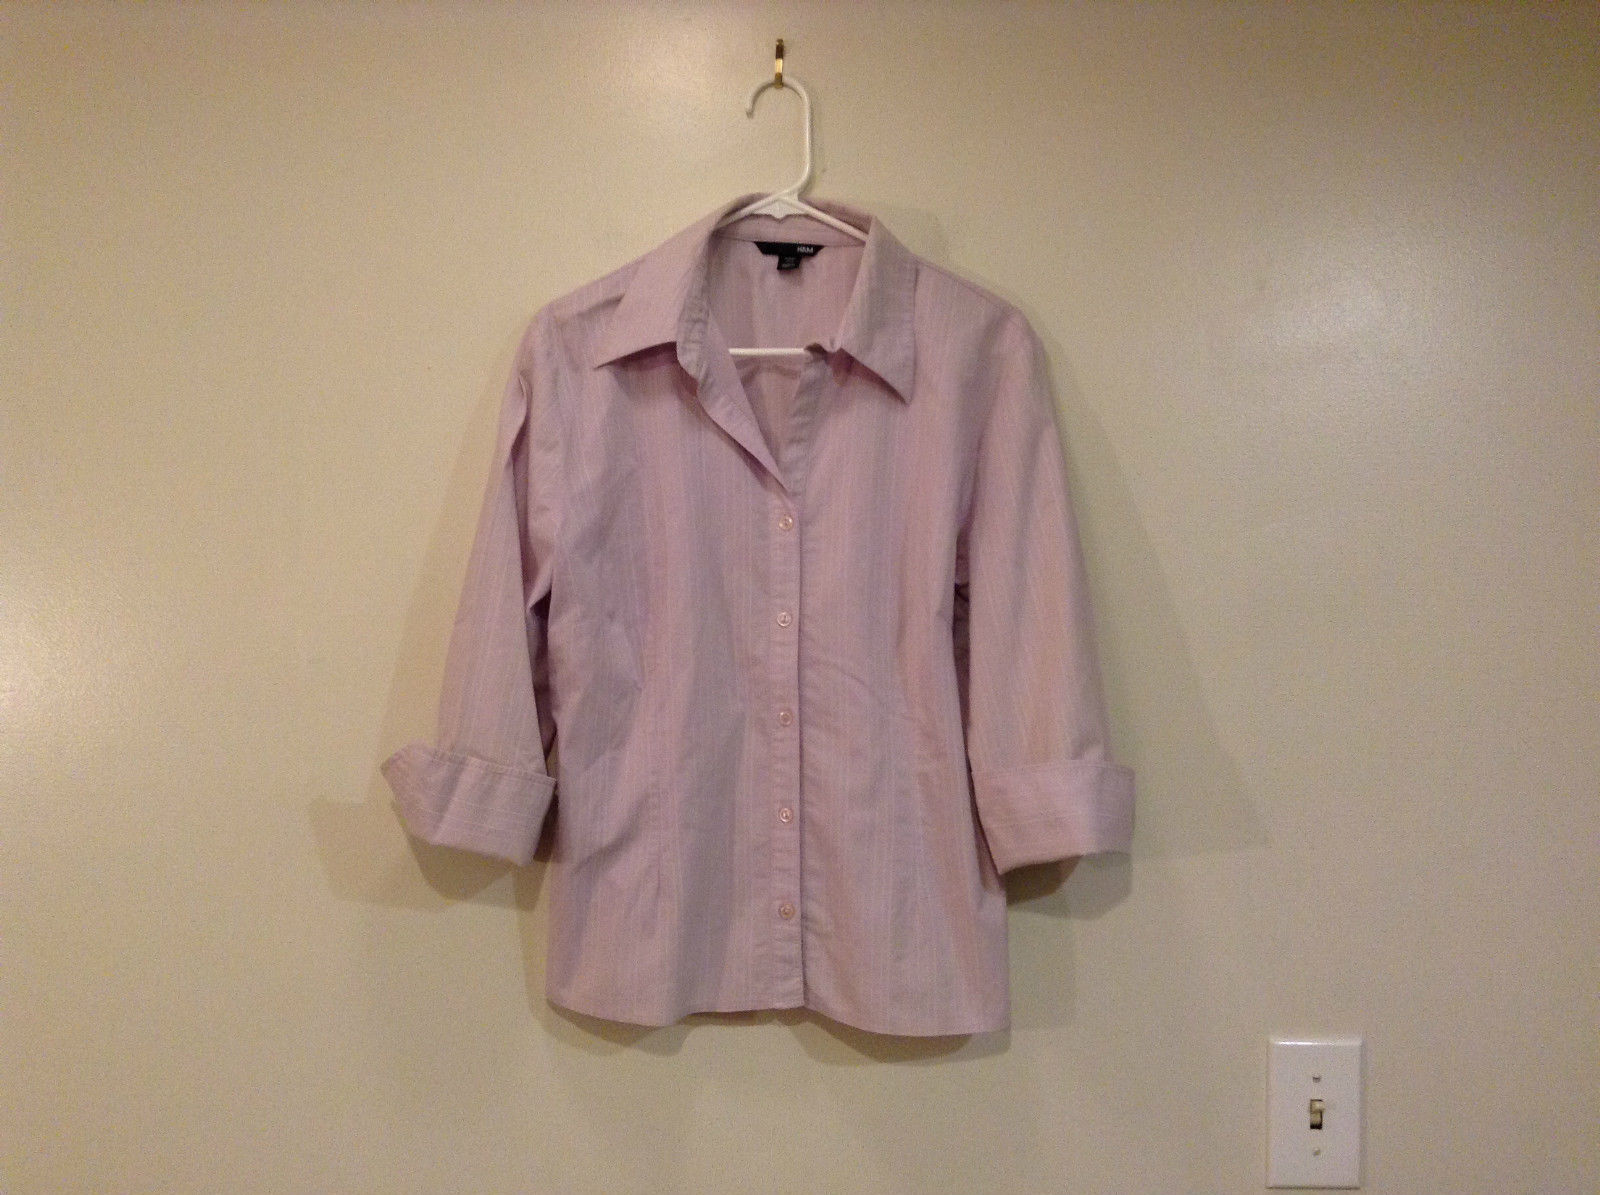 Light Violet Button Front V Neck H and M Shirt Size 14 Decorative Cuffs Stripes